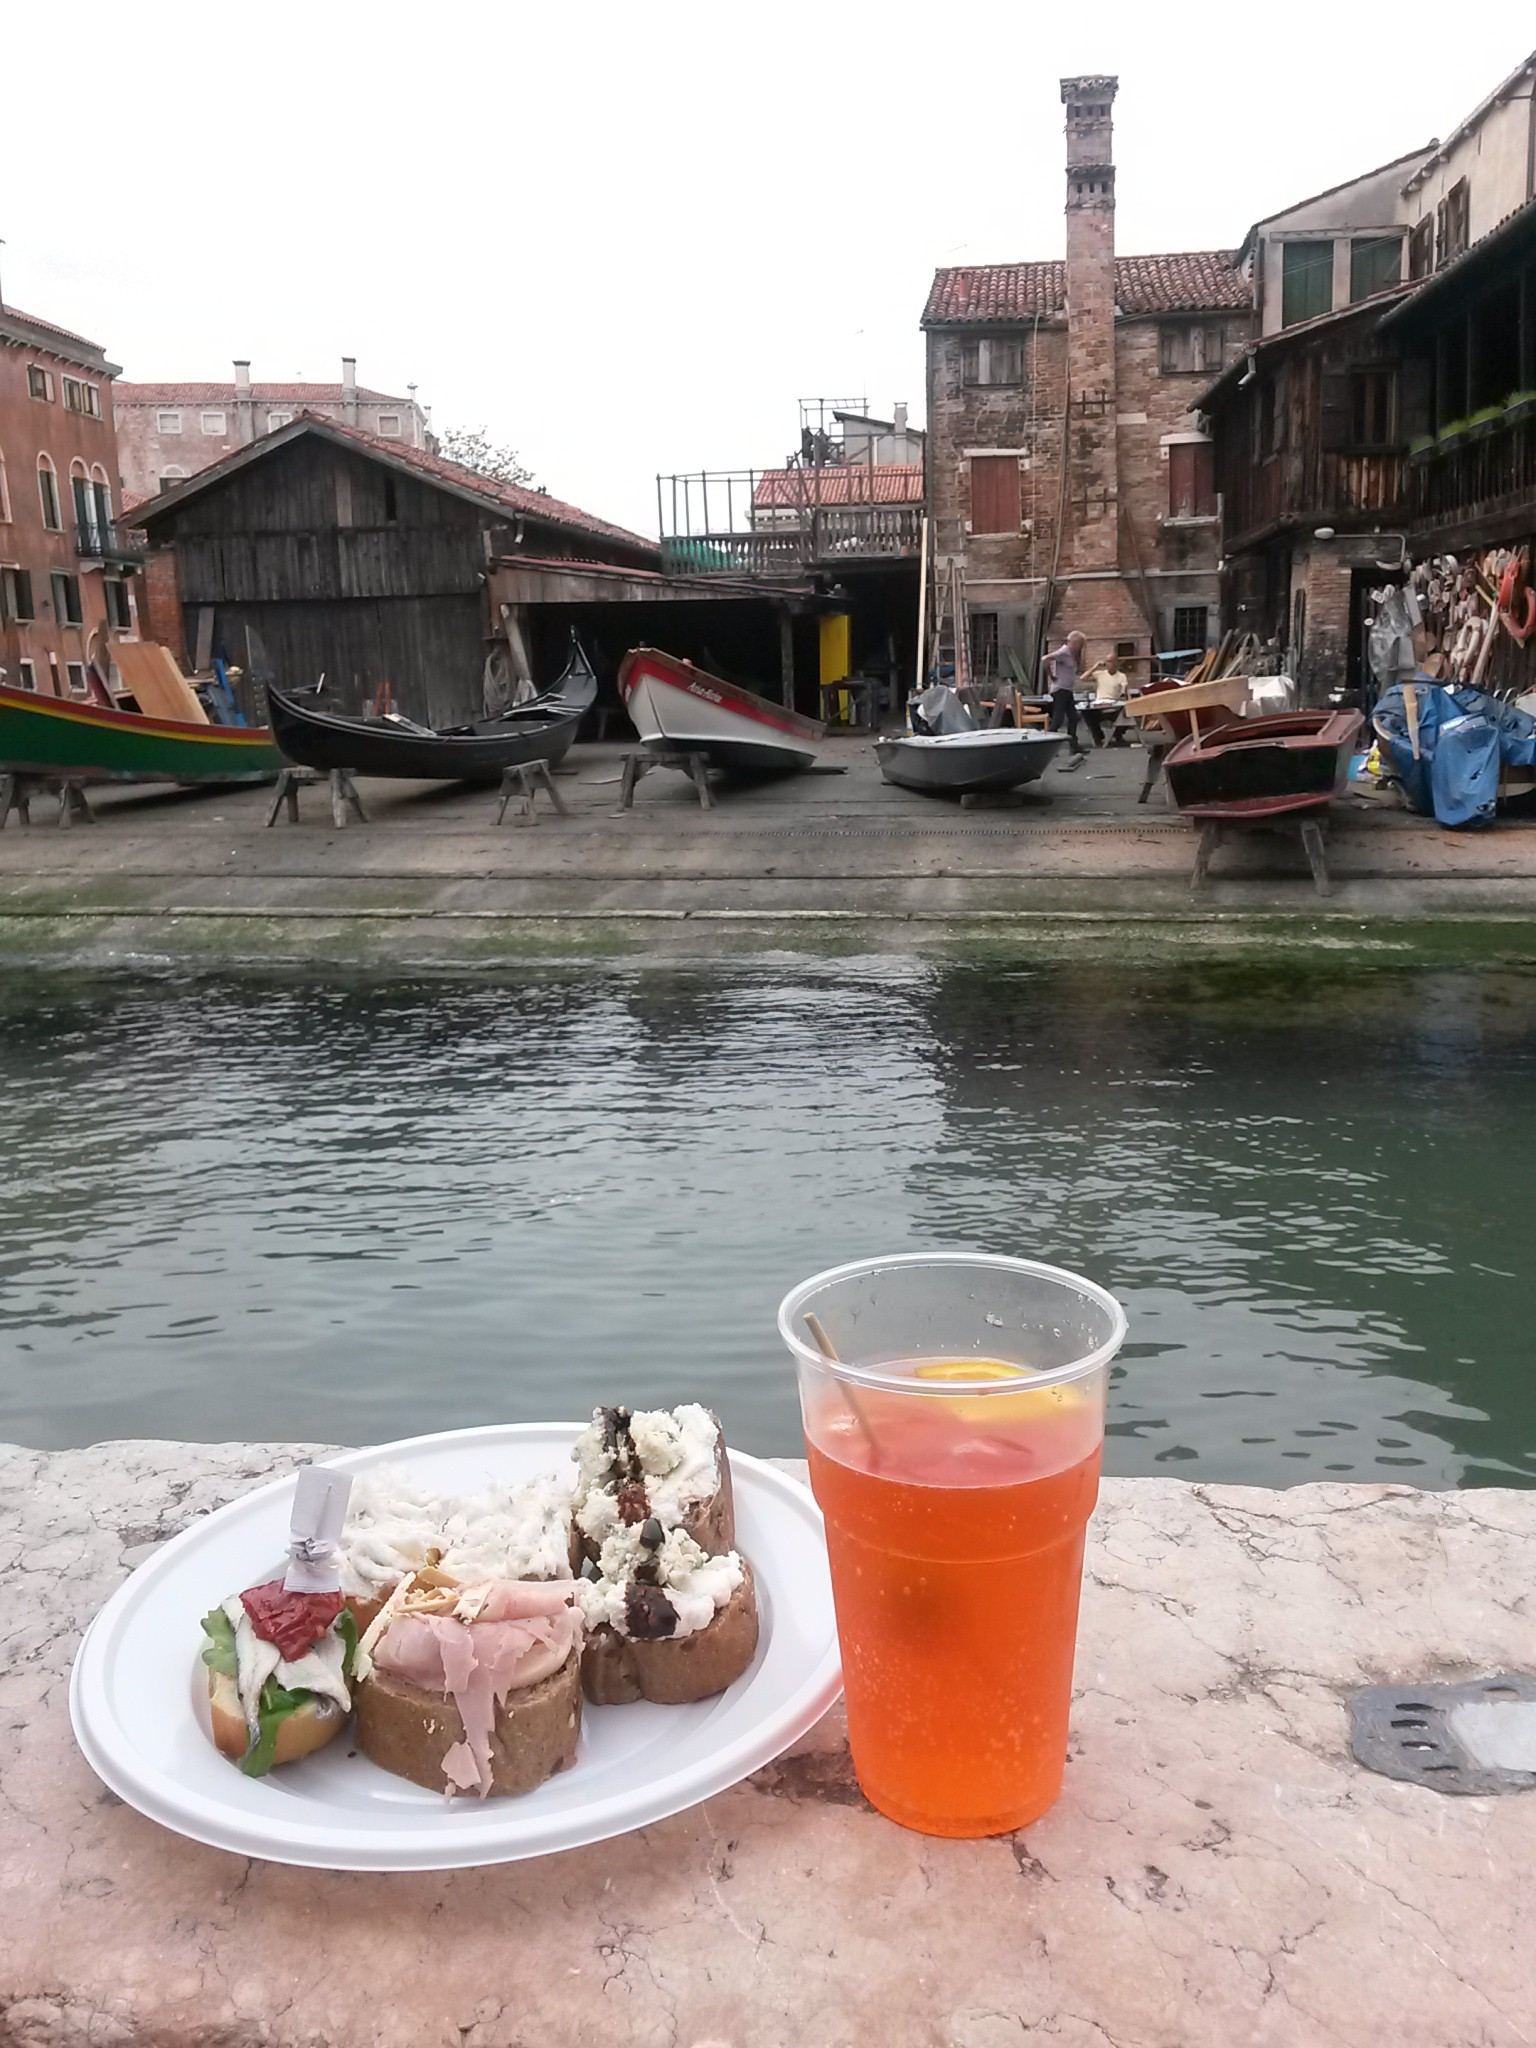 An Aperol spritzer and crostini make a nice canal side lunch...